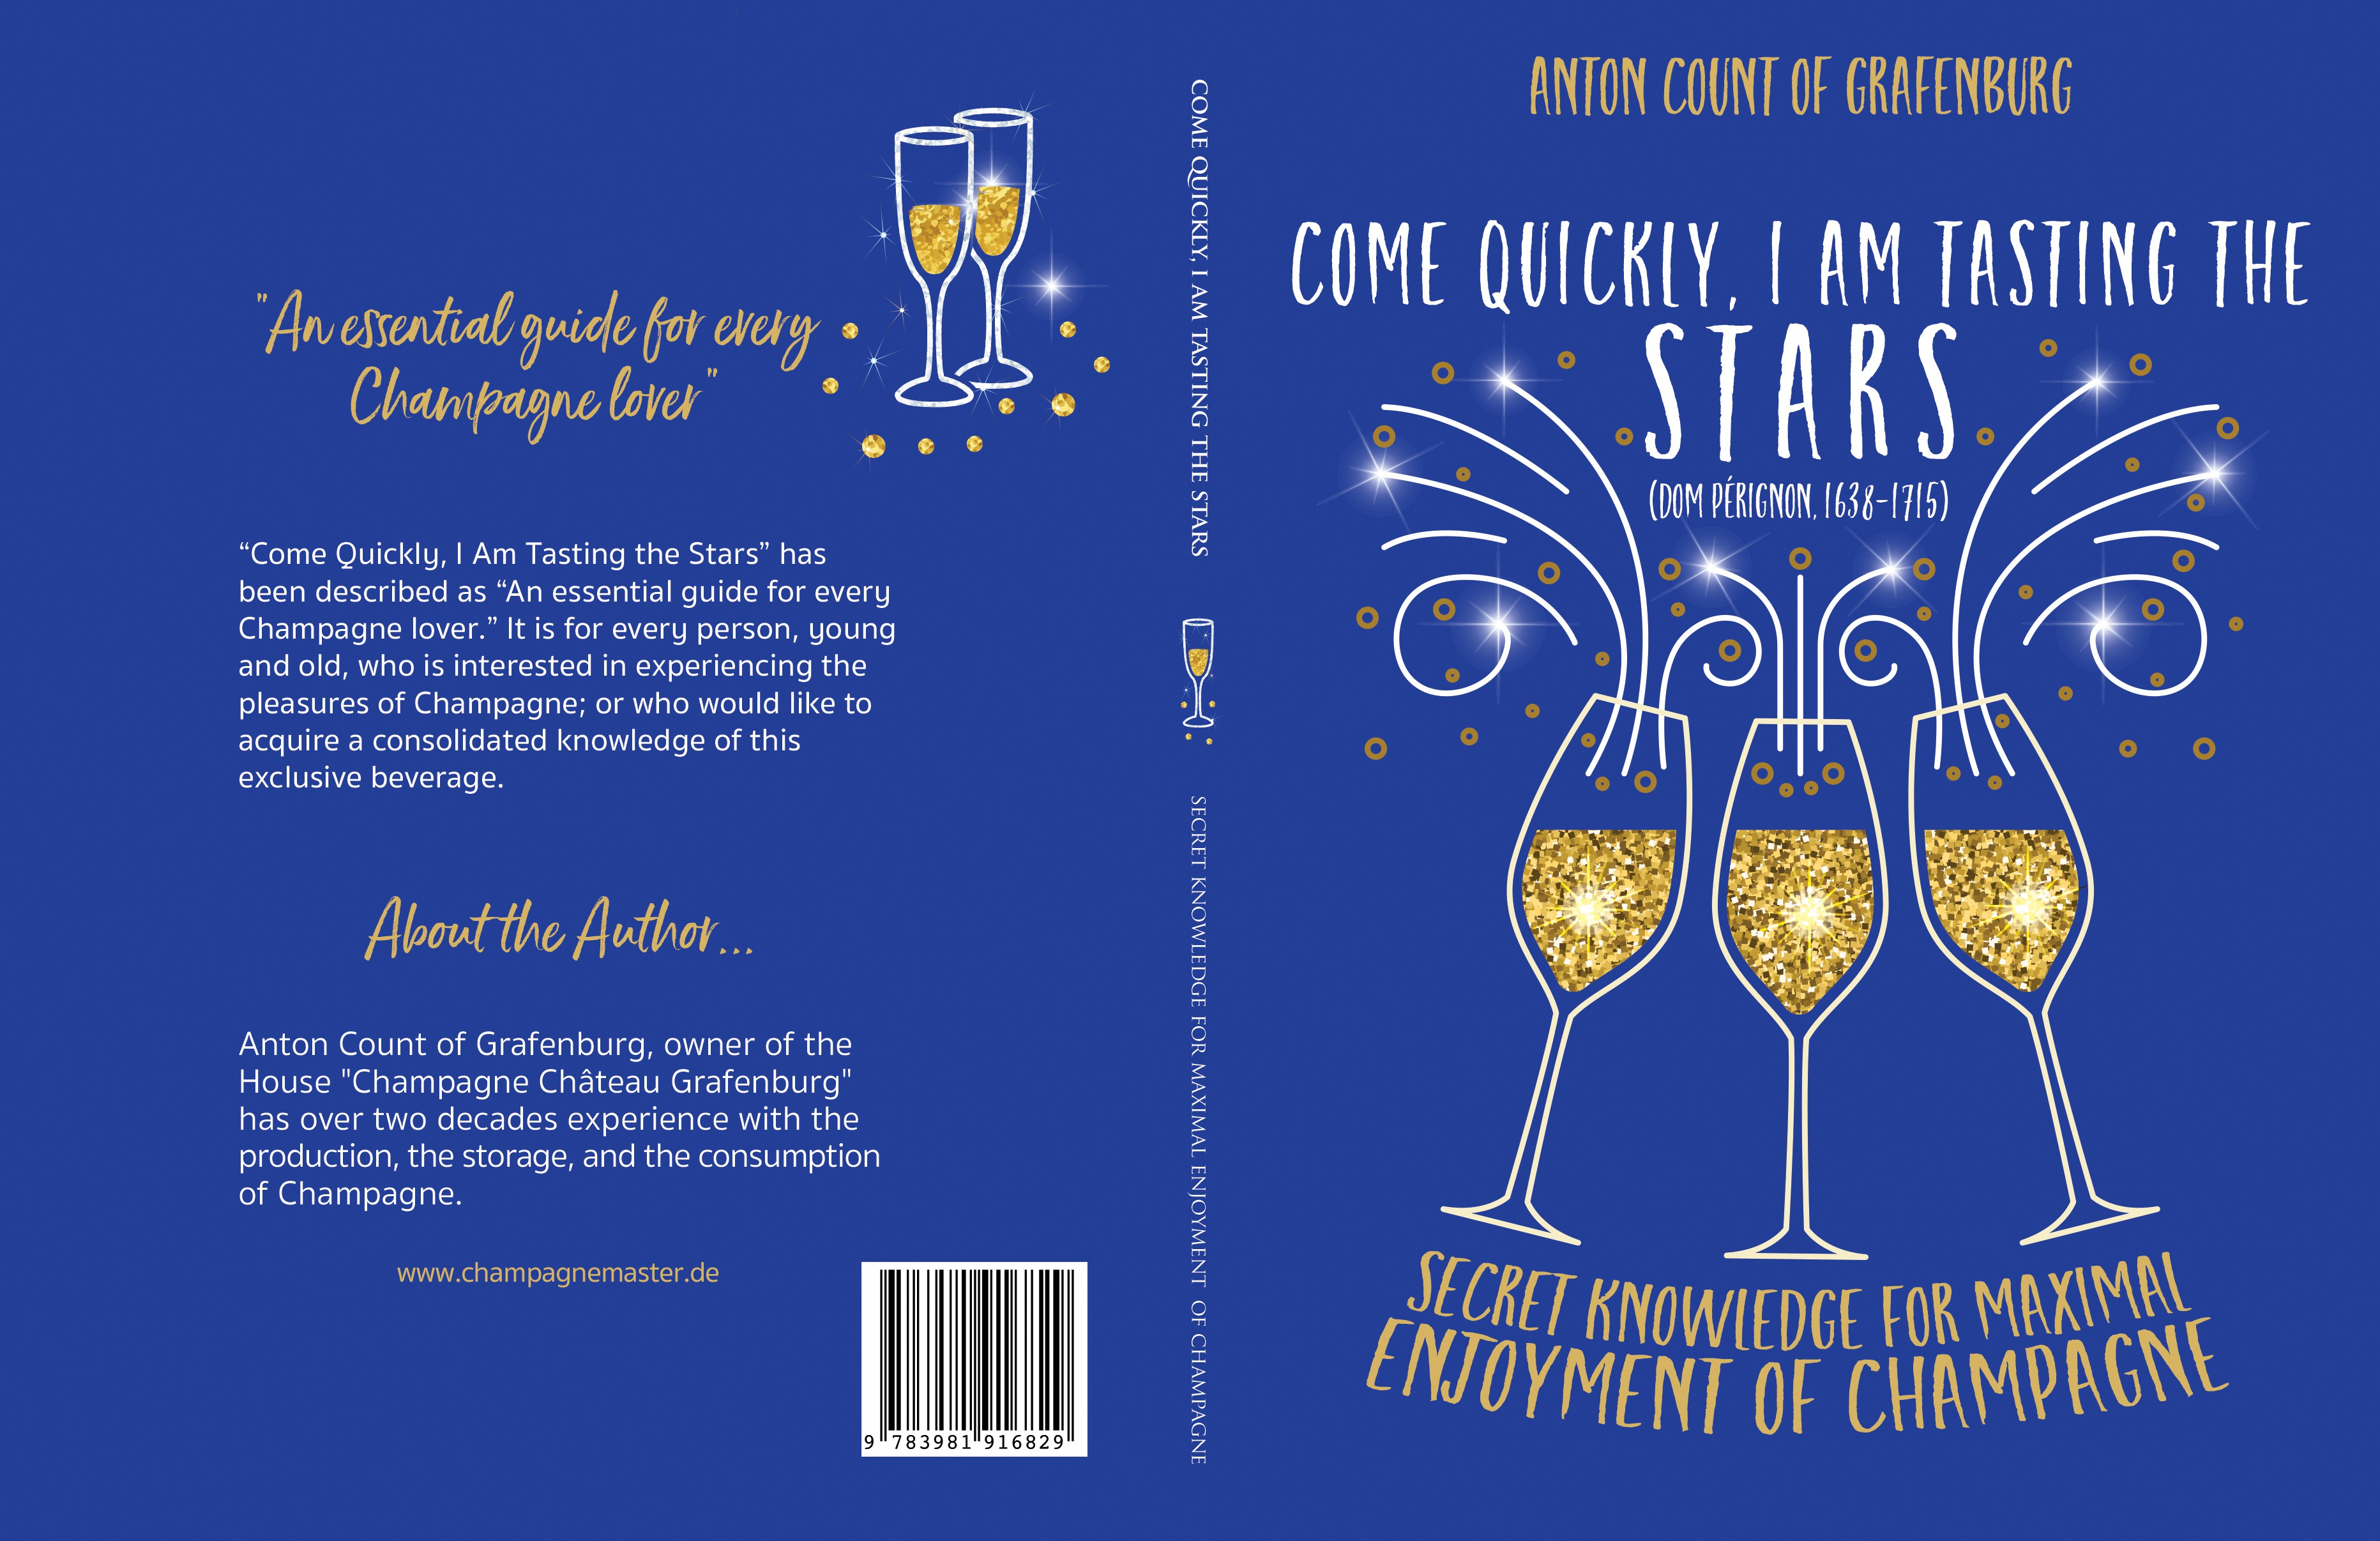 Create a cover showing the pleasures of Champagne